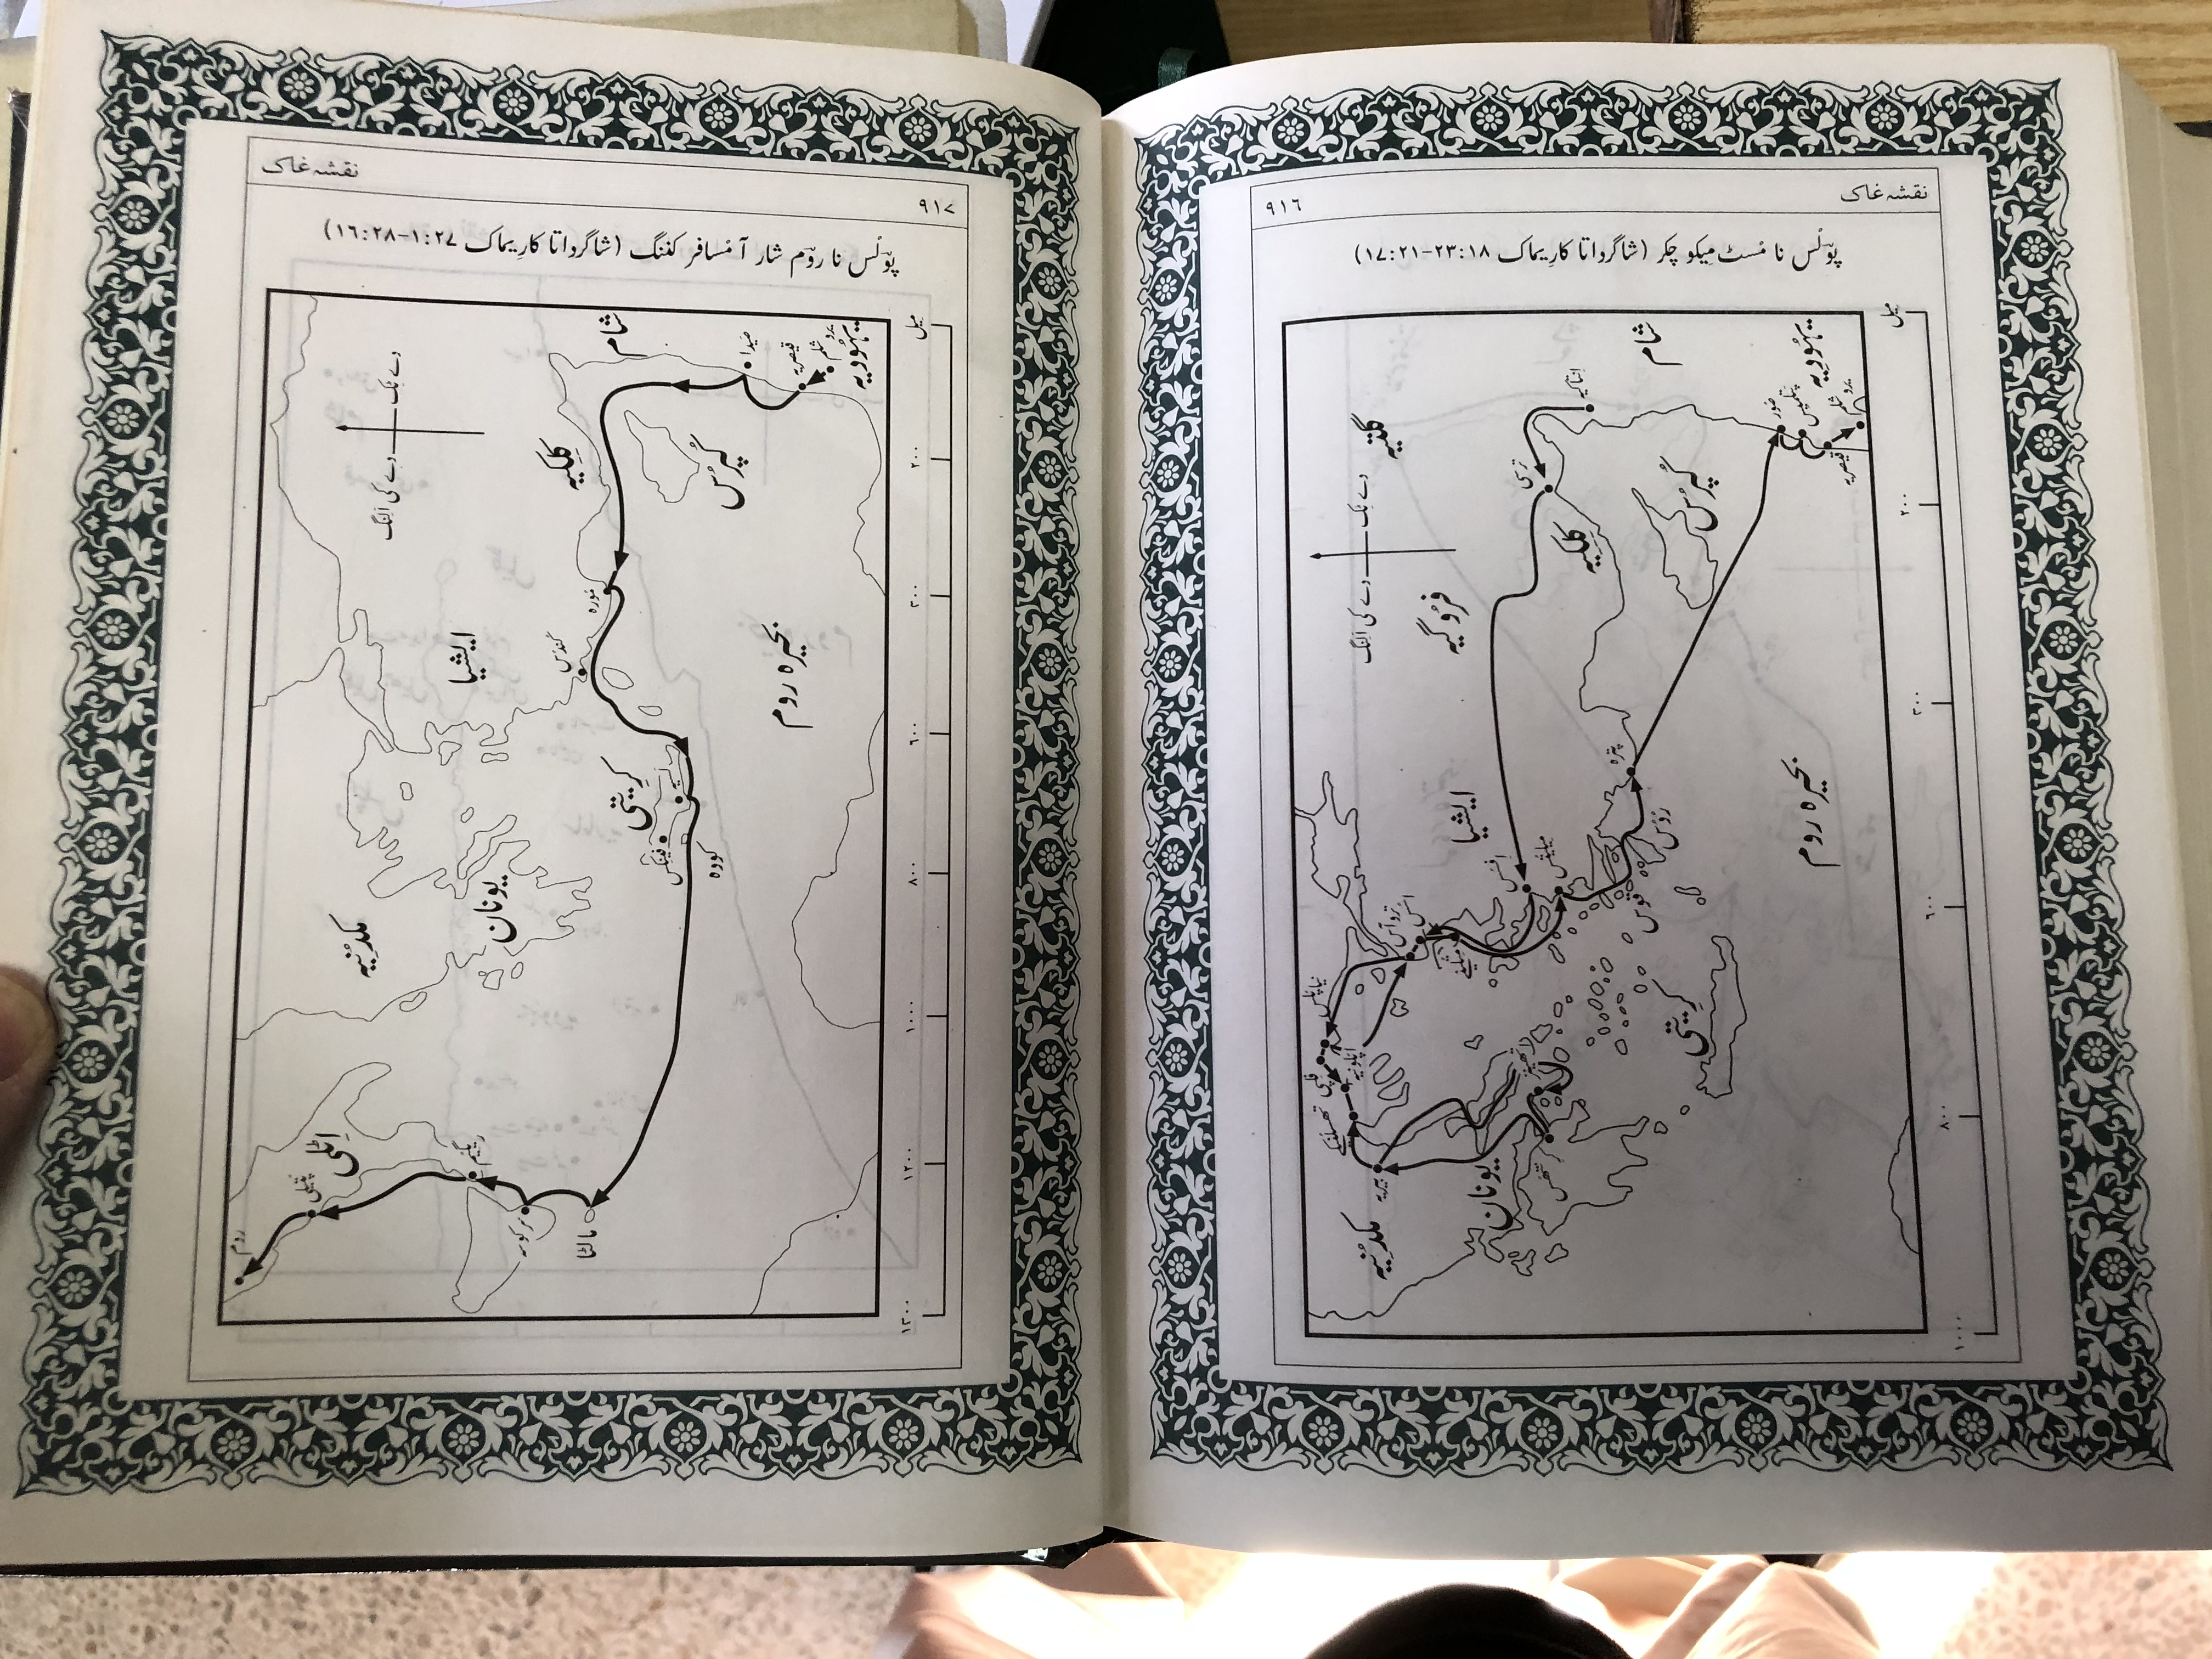 brahui-nt-the-new-testament-in-brahui-language-first-edition-with-maps-10.jpg